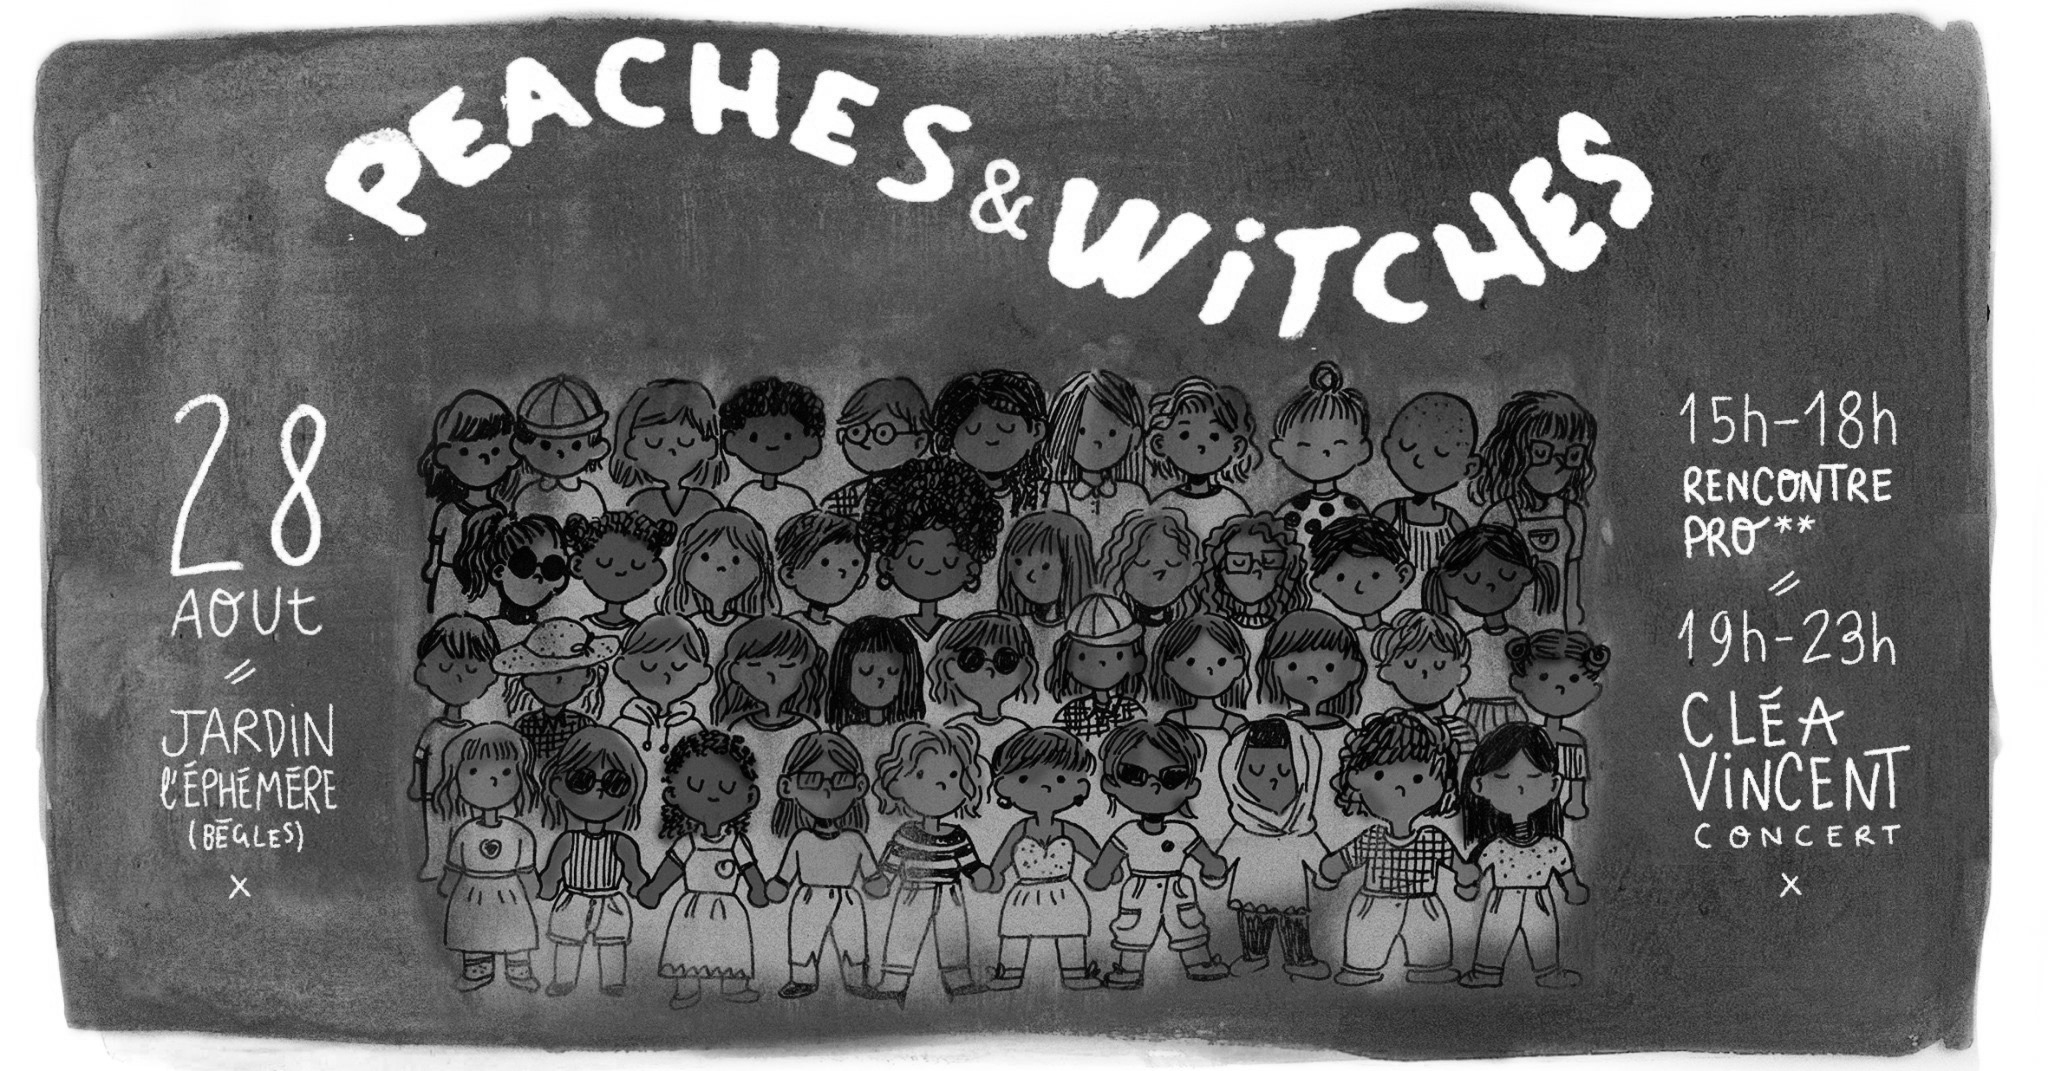 Peaches & Witches